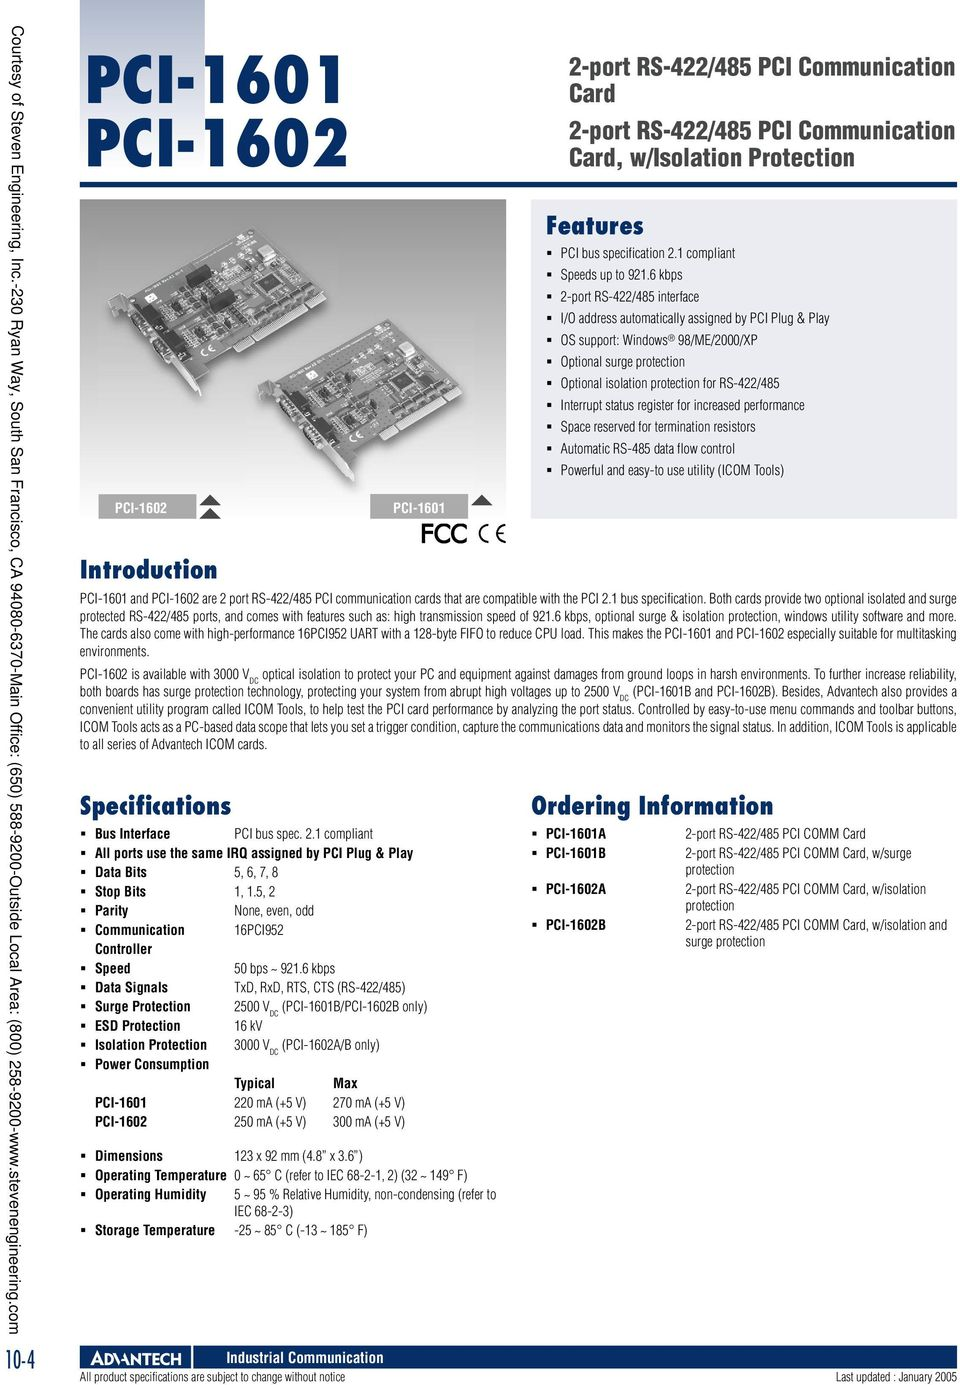 Industrial Communication Pdf Usb To Serial Surge And Optical Isolation Converter Rs422 485 V 0 Ma Pci